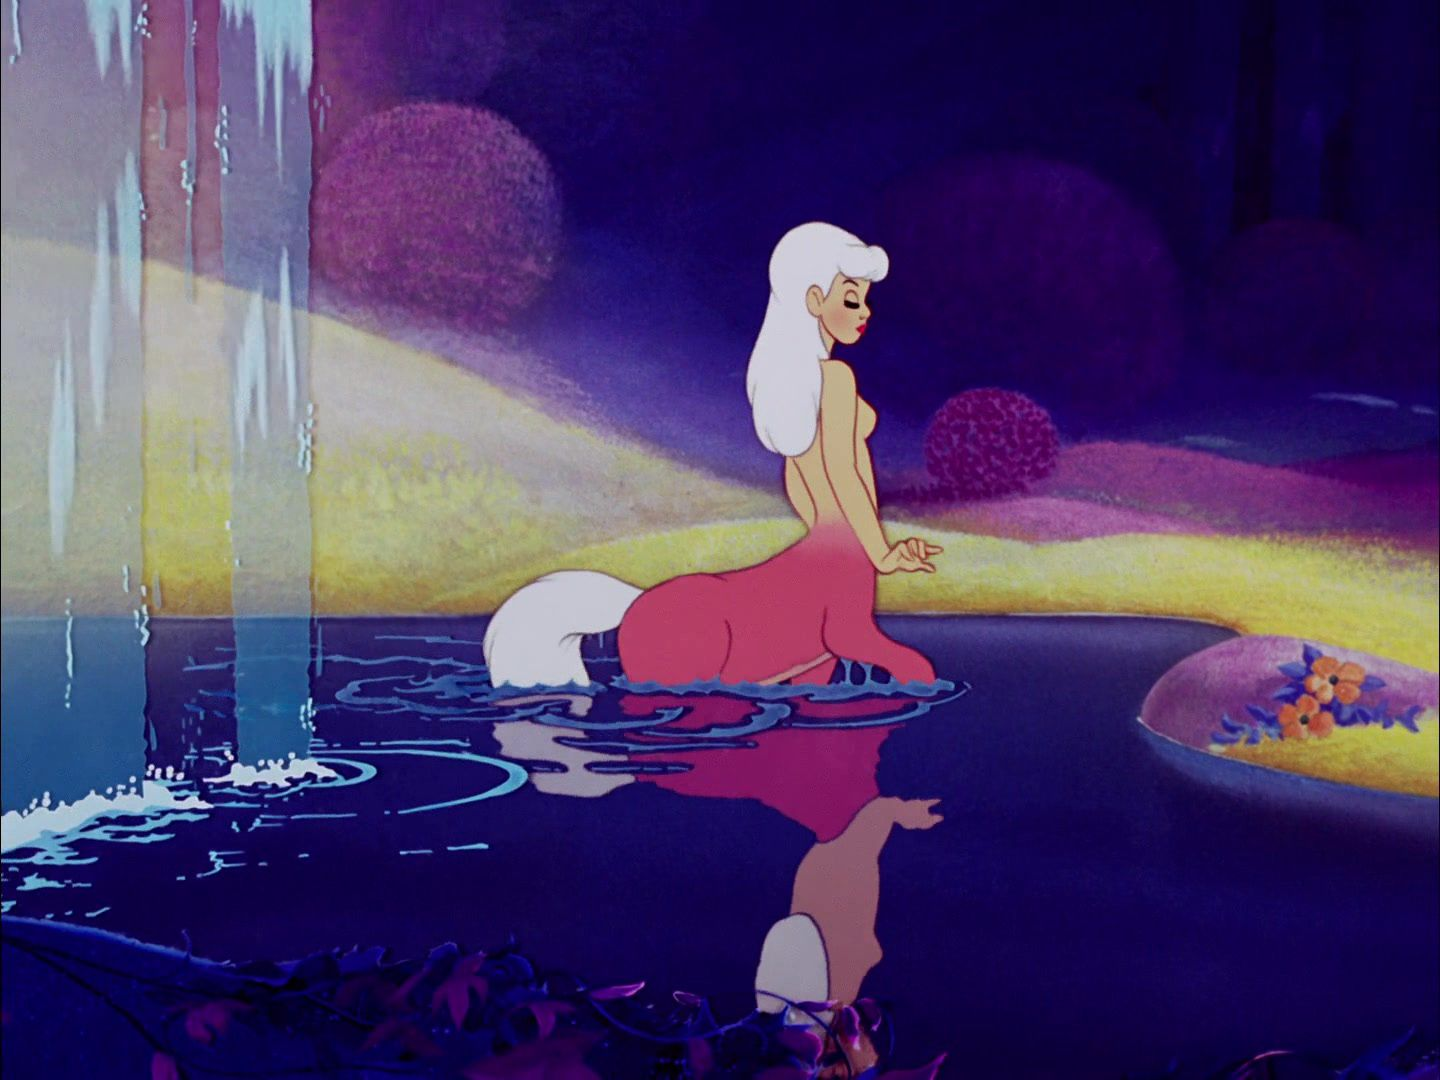 Fantasia (Walt Disney, Ben Sharpsteen, 1940)